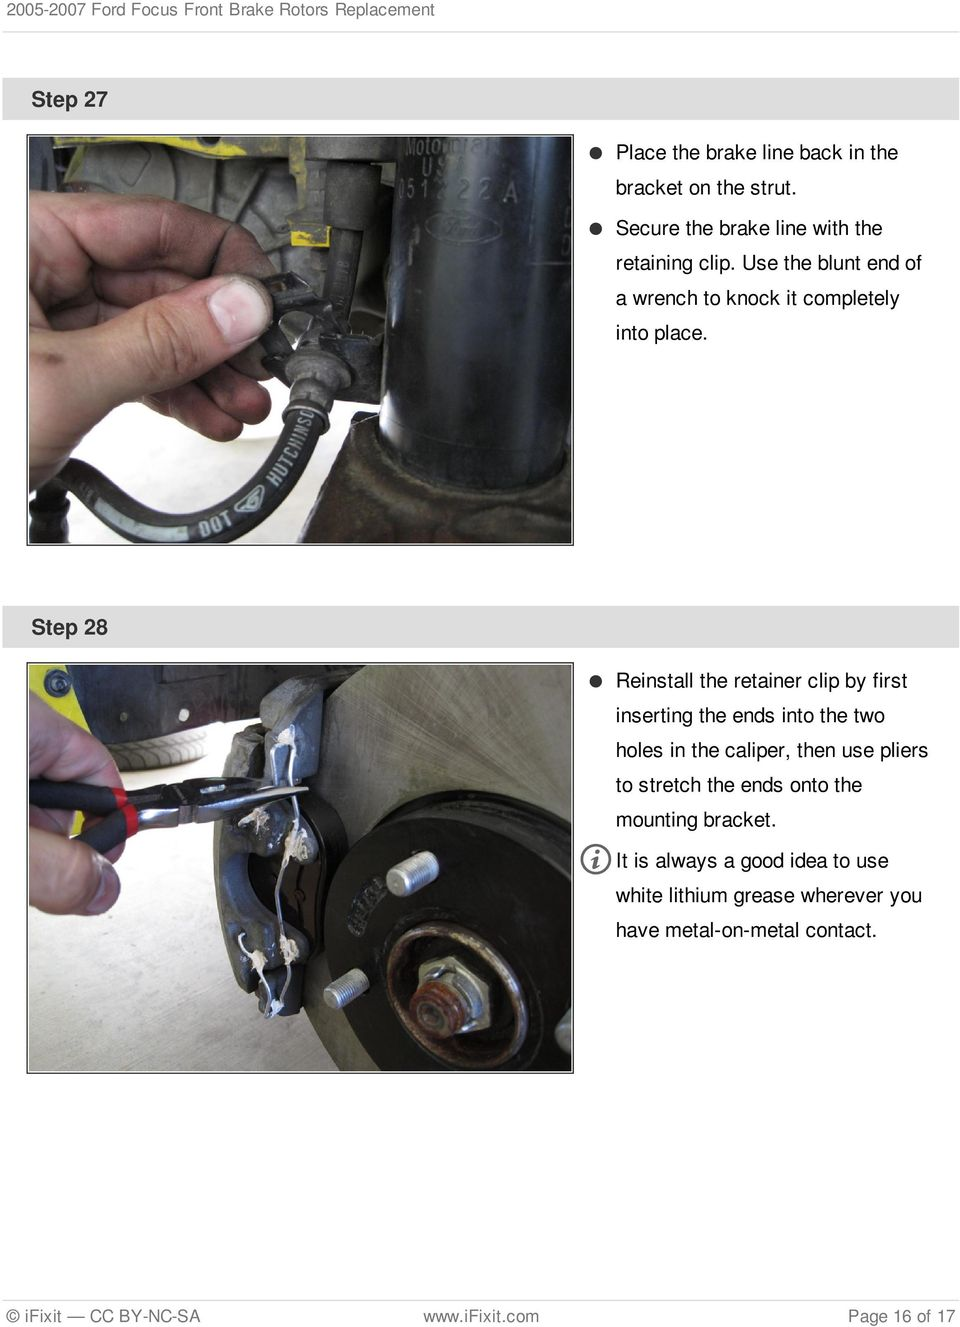 Step 28 Reinstall the retainer clip by first inserting the ends into the two holes in the caliper, then use pliers to